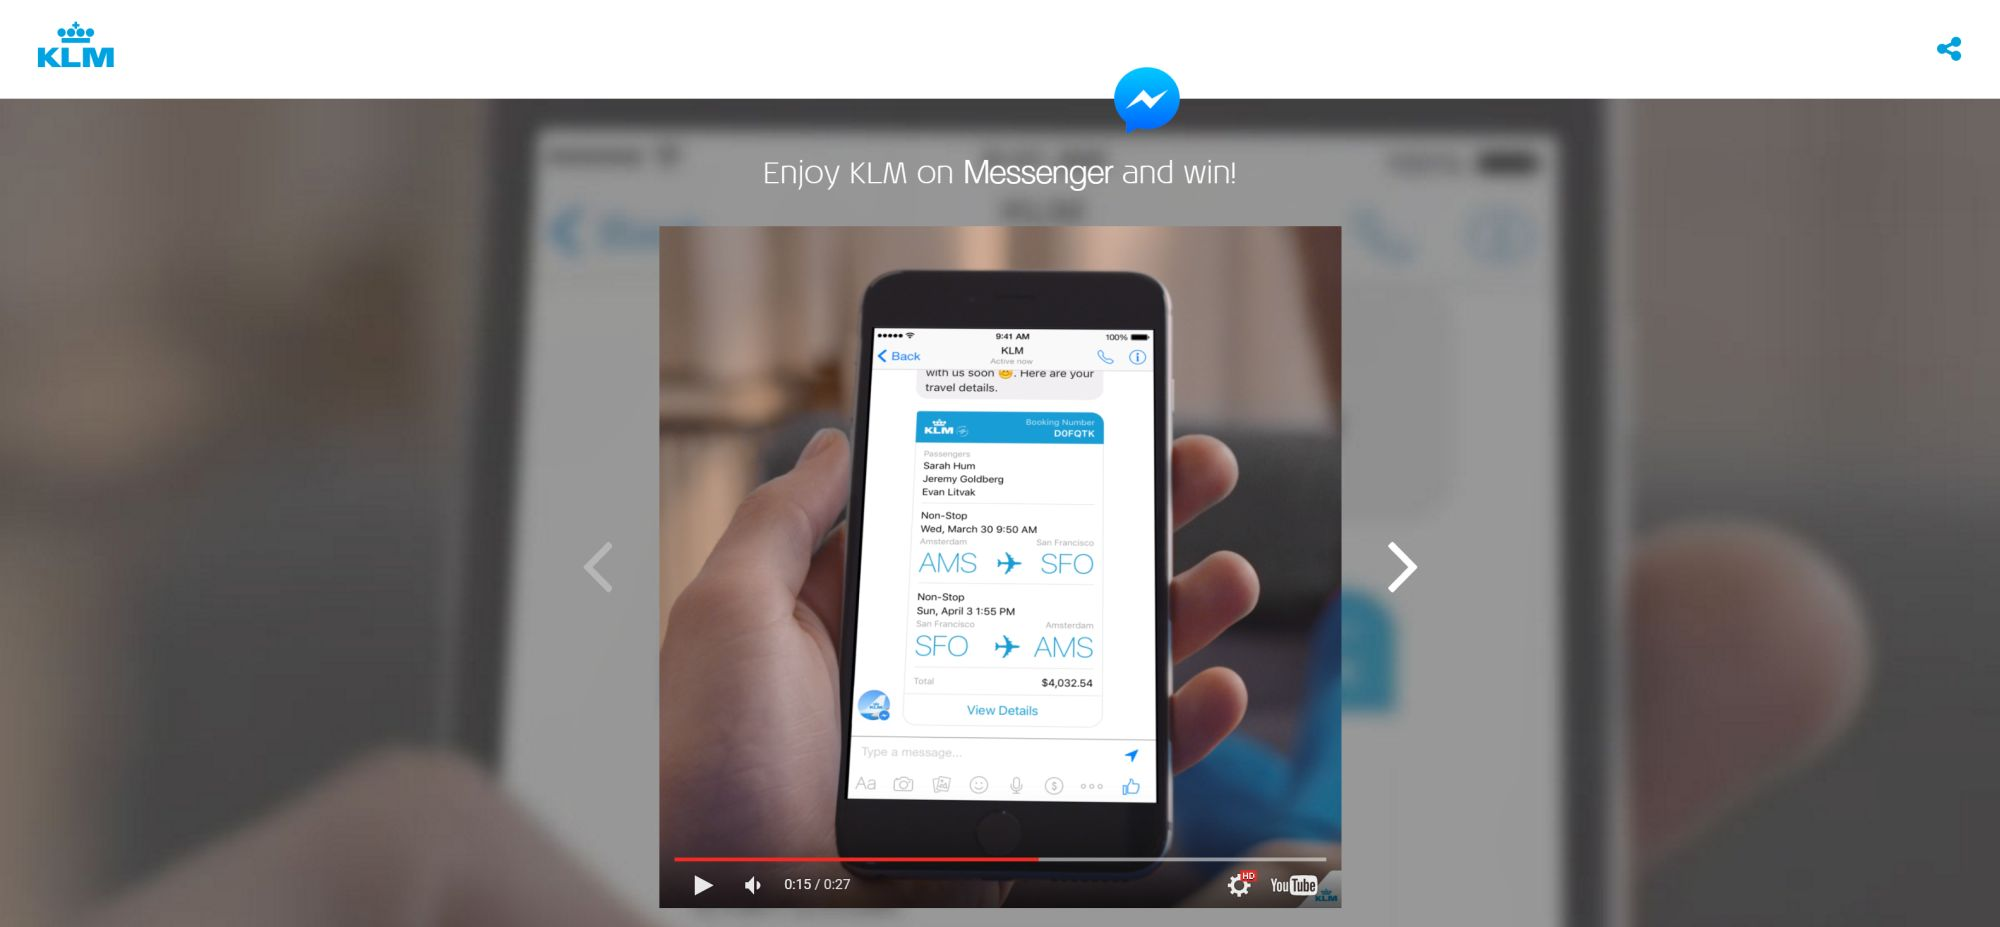 KLM is now on Facebook Messenger